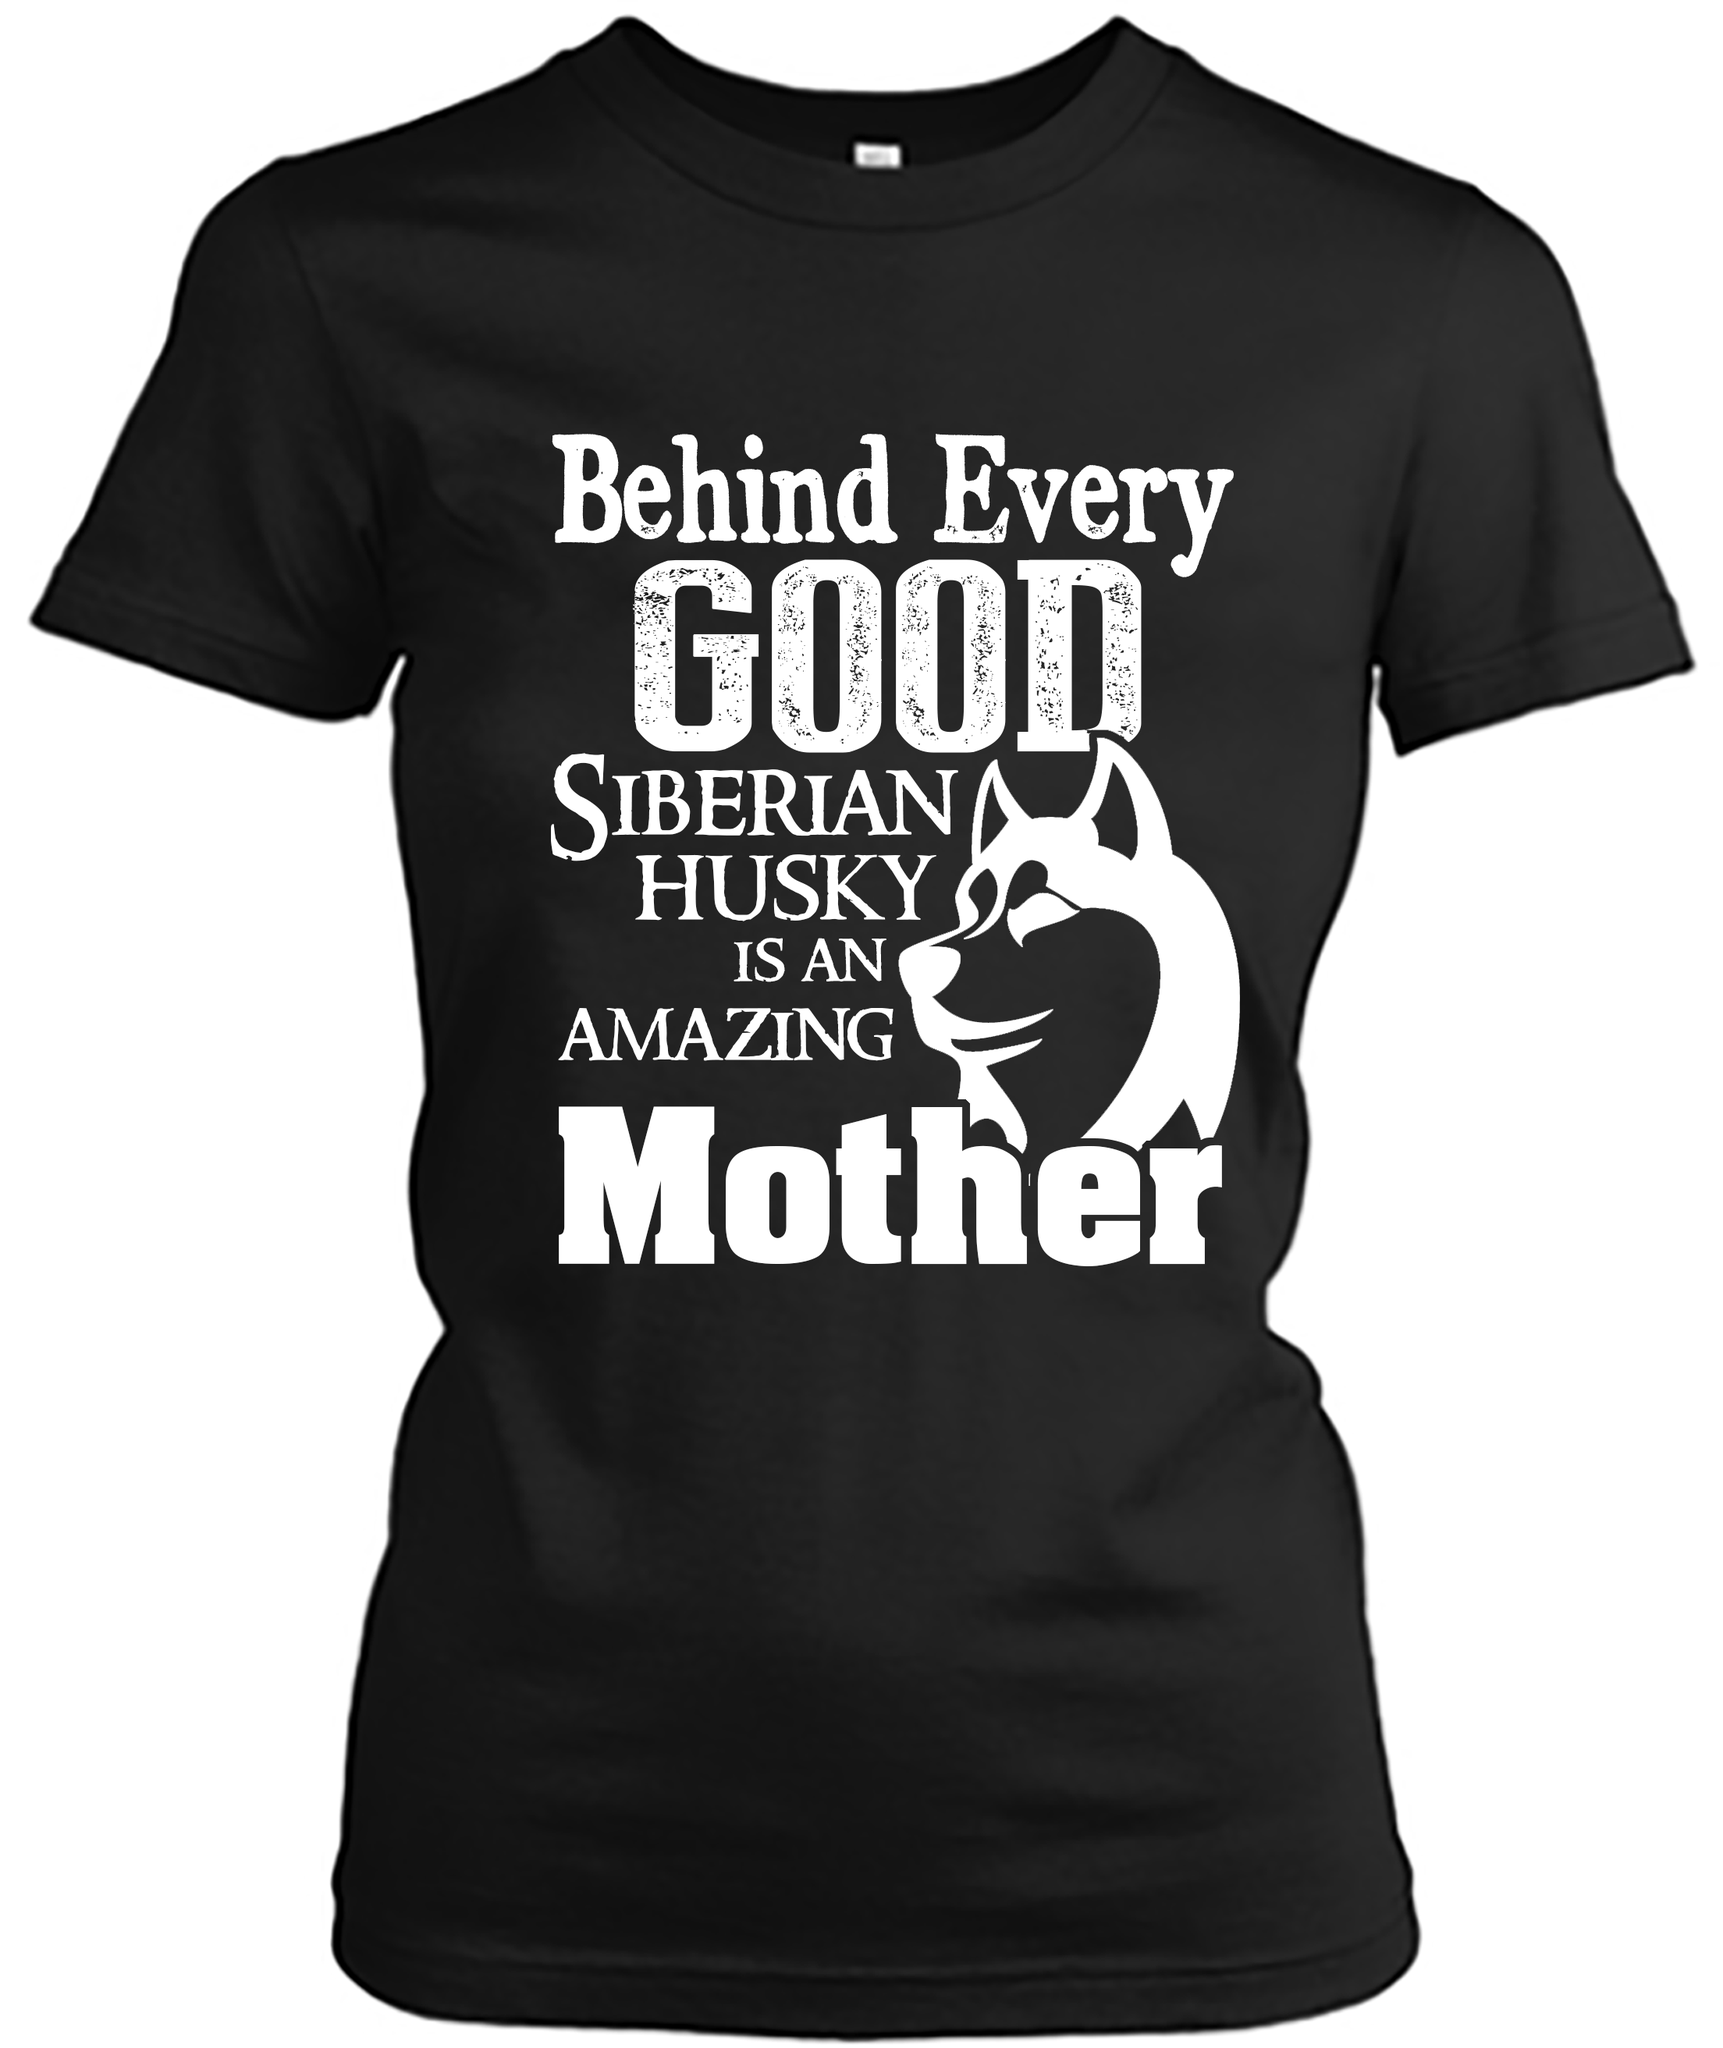 """Behind Every Good Siberian Husky is an Amazing Mother"" Awesome Women's short sleeve t-shirt"